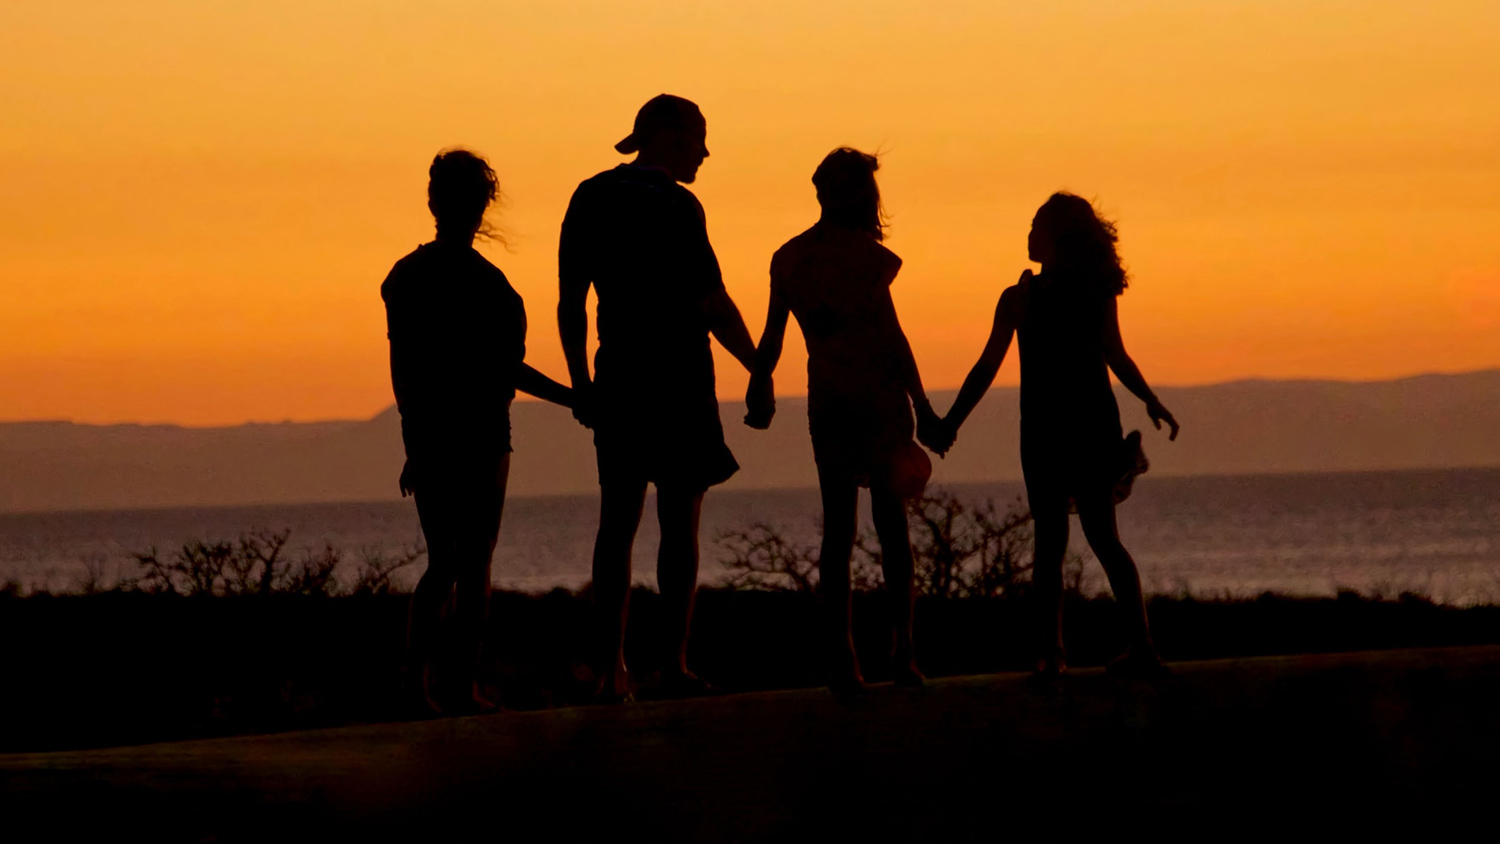 family in silhouette - How Kids Are Inspiring Adults to Address Climate Change - College of Natural Resources News NC State University